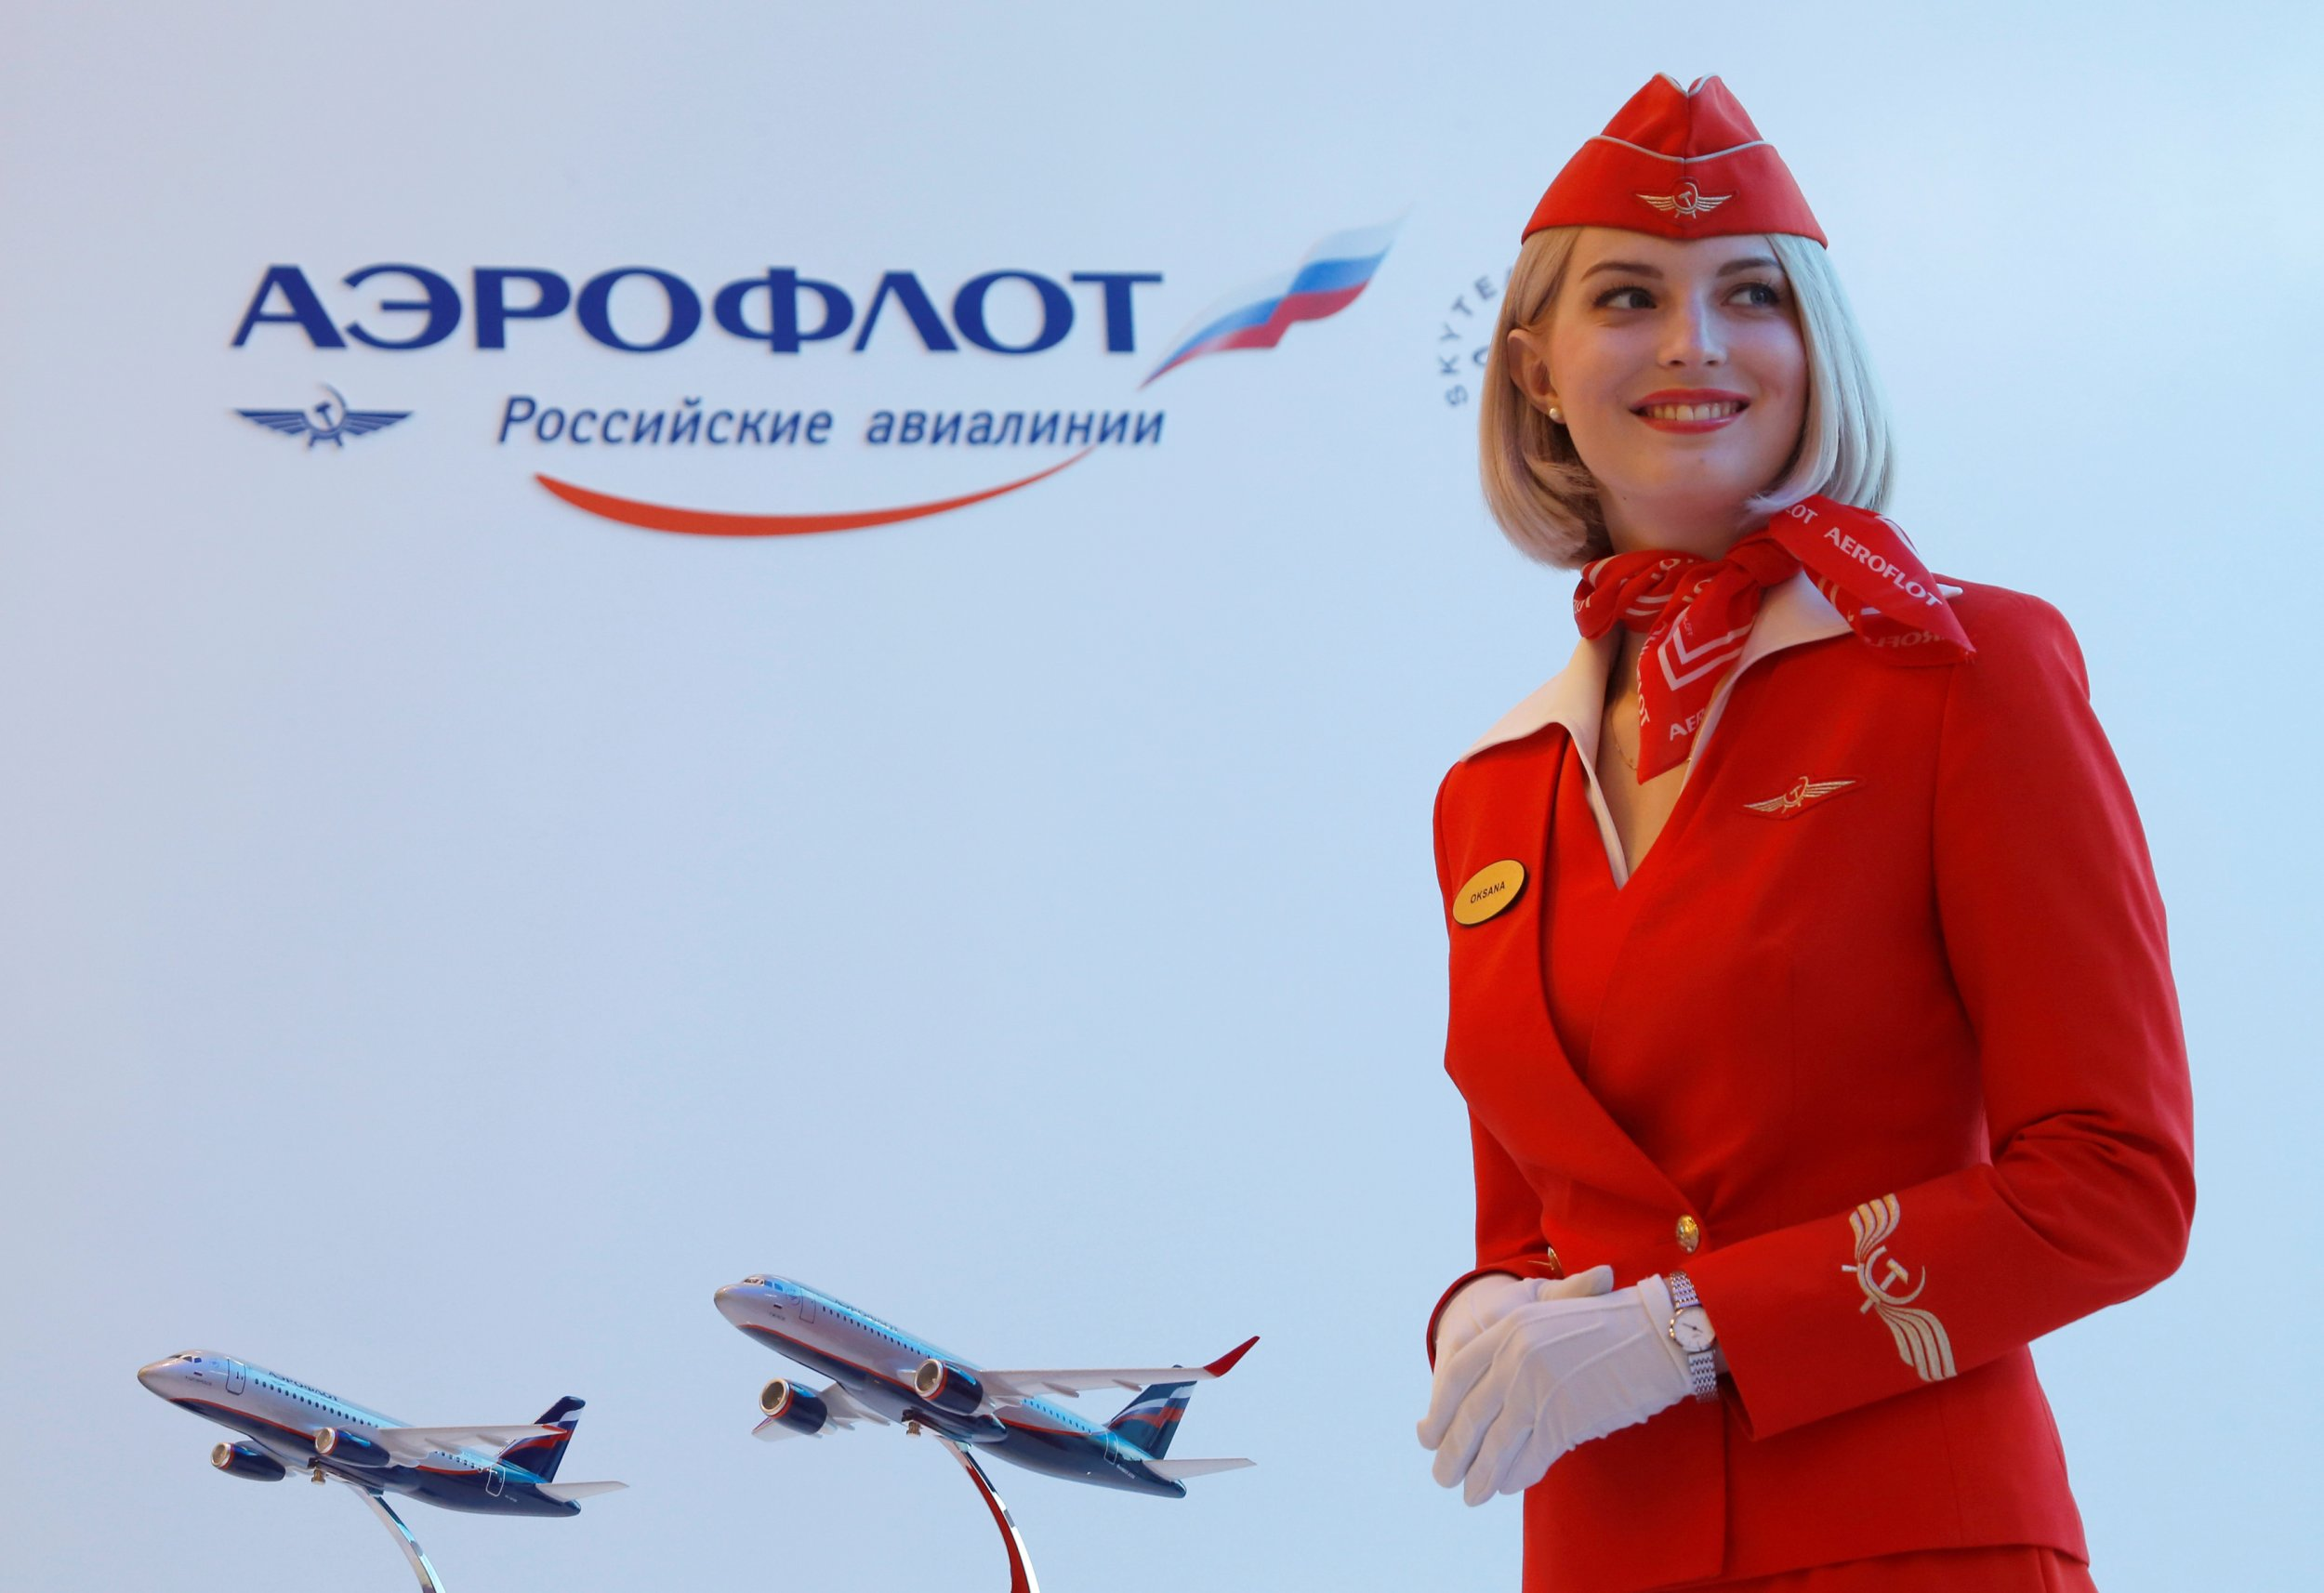 sky is not the limit for aeroflot crew weight say